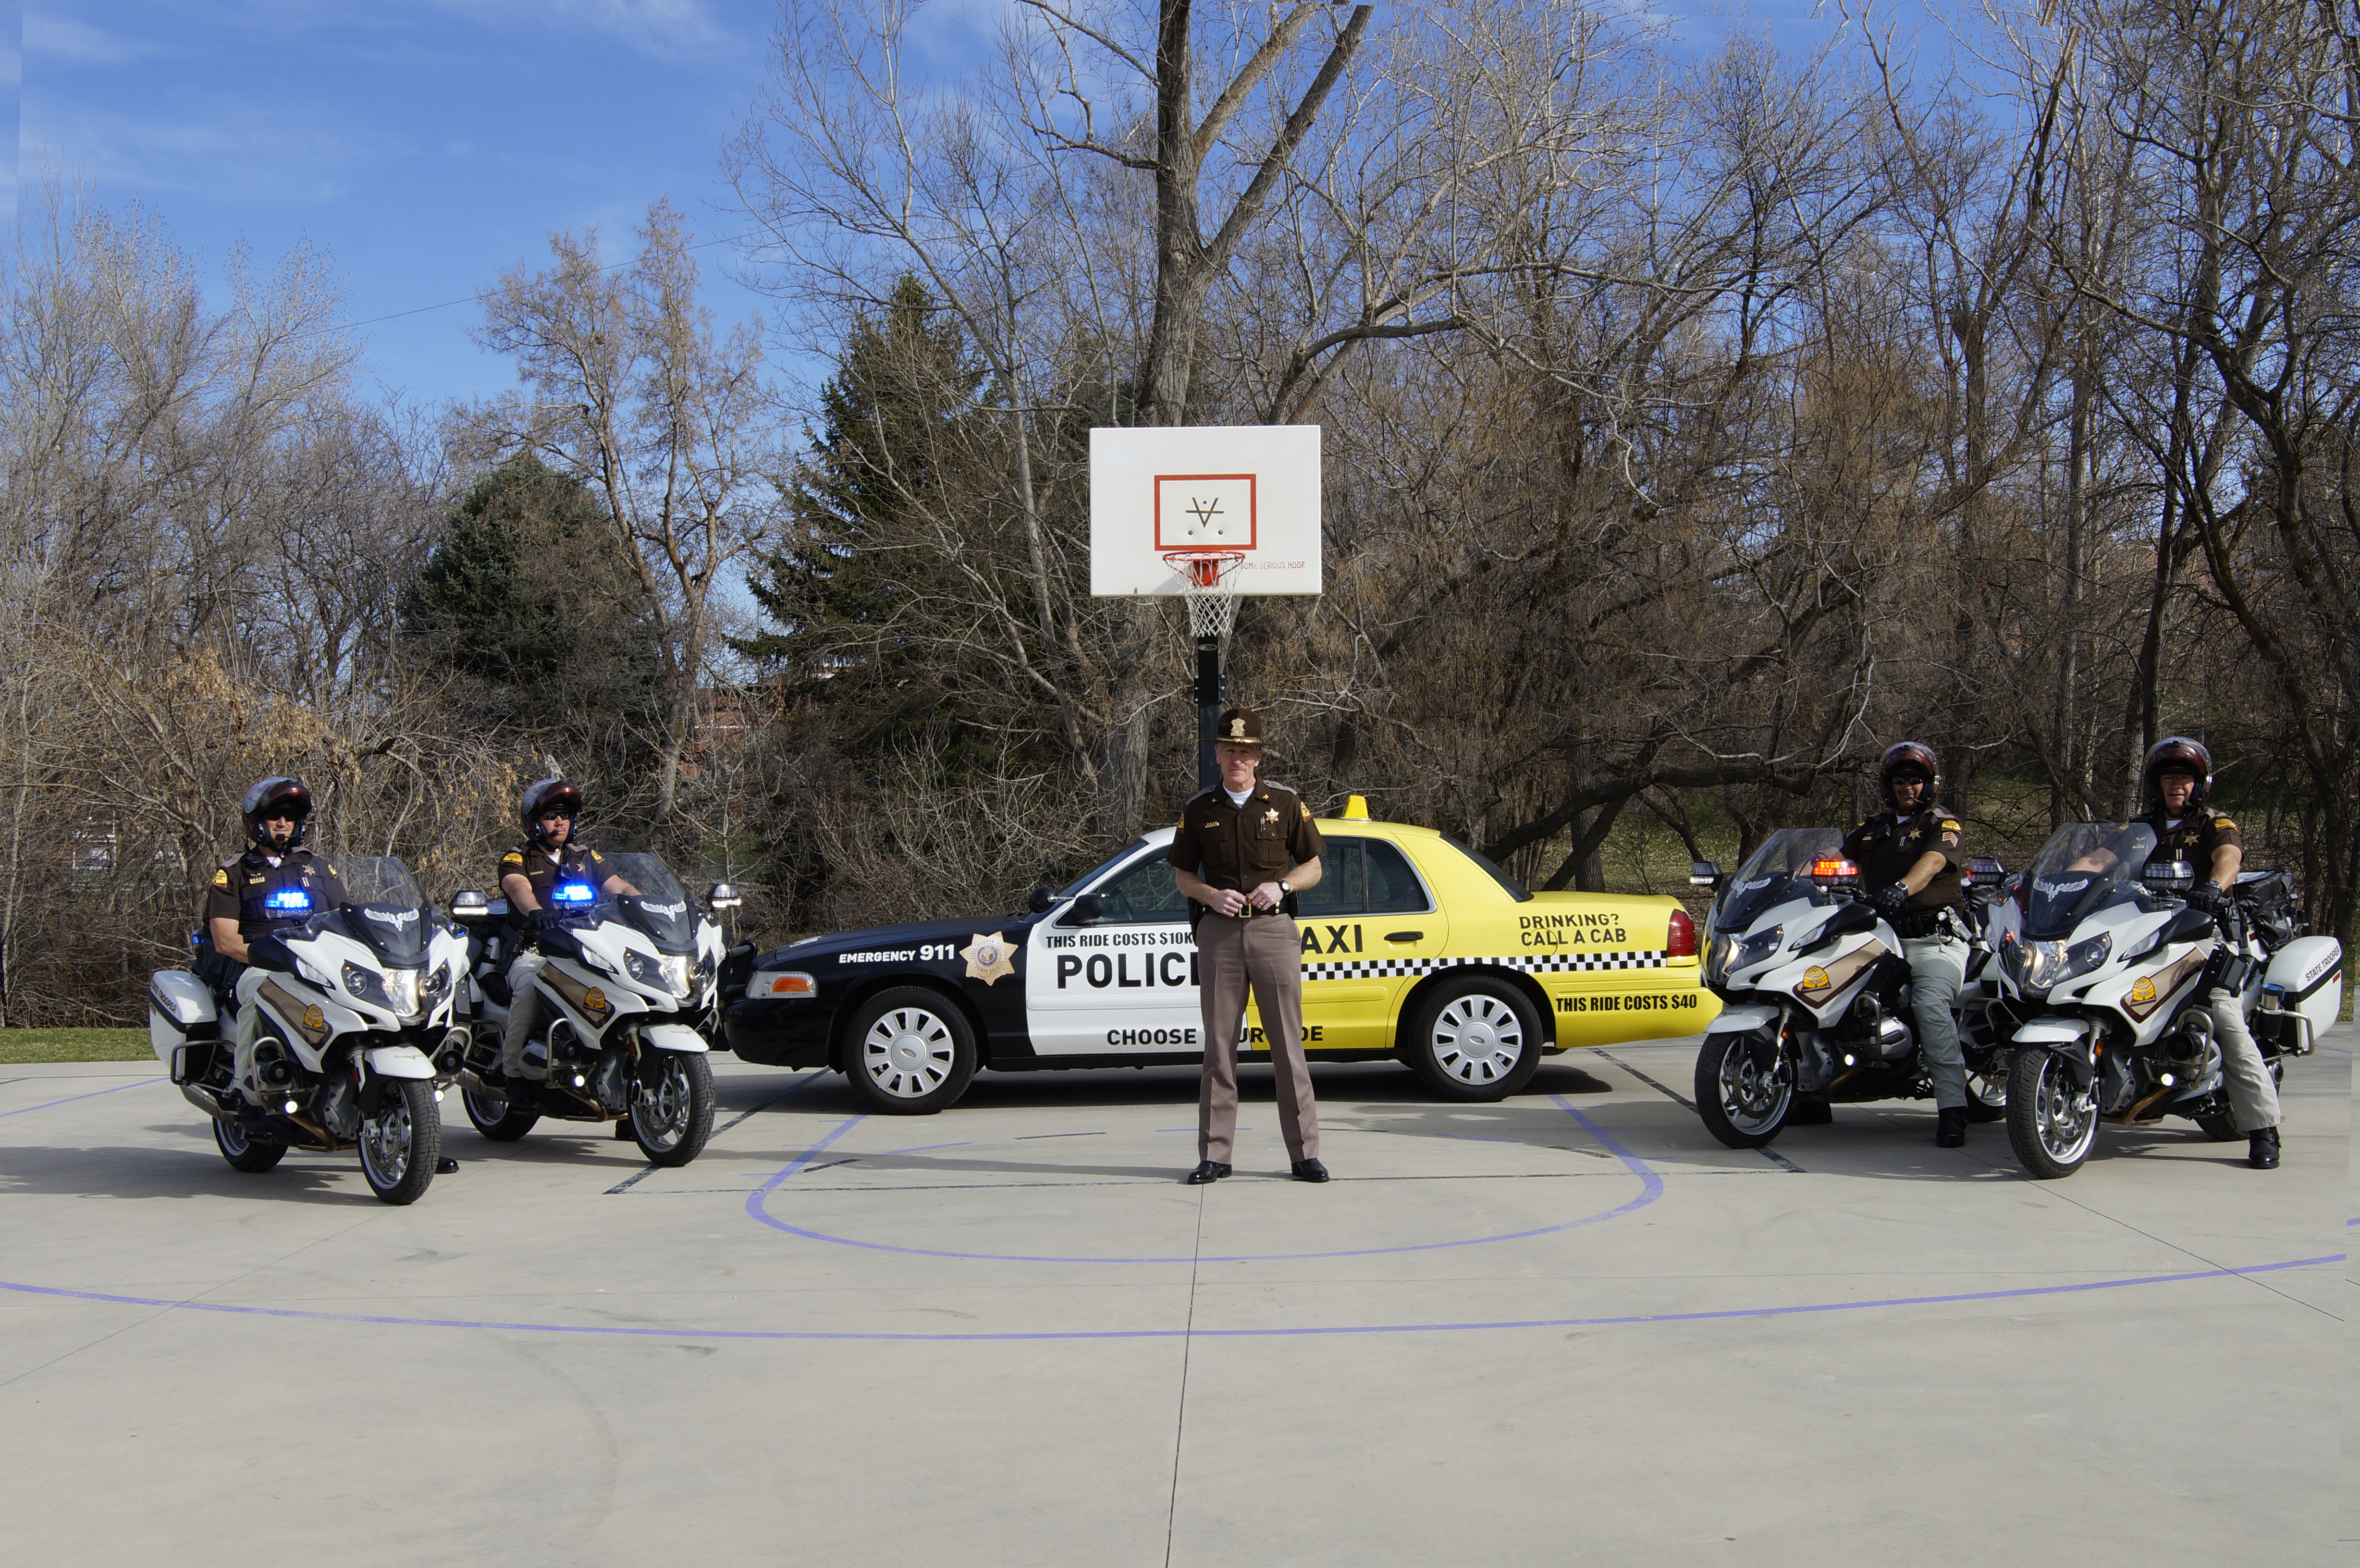 Colonel Rapich with UHP motor officers at the St. Patrick's Day and NCAA tournament DUI prevention media event.